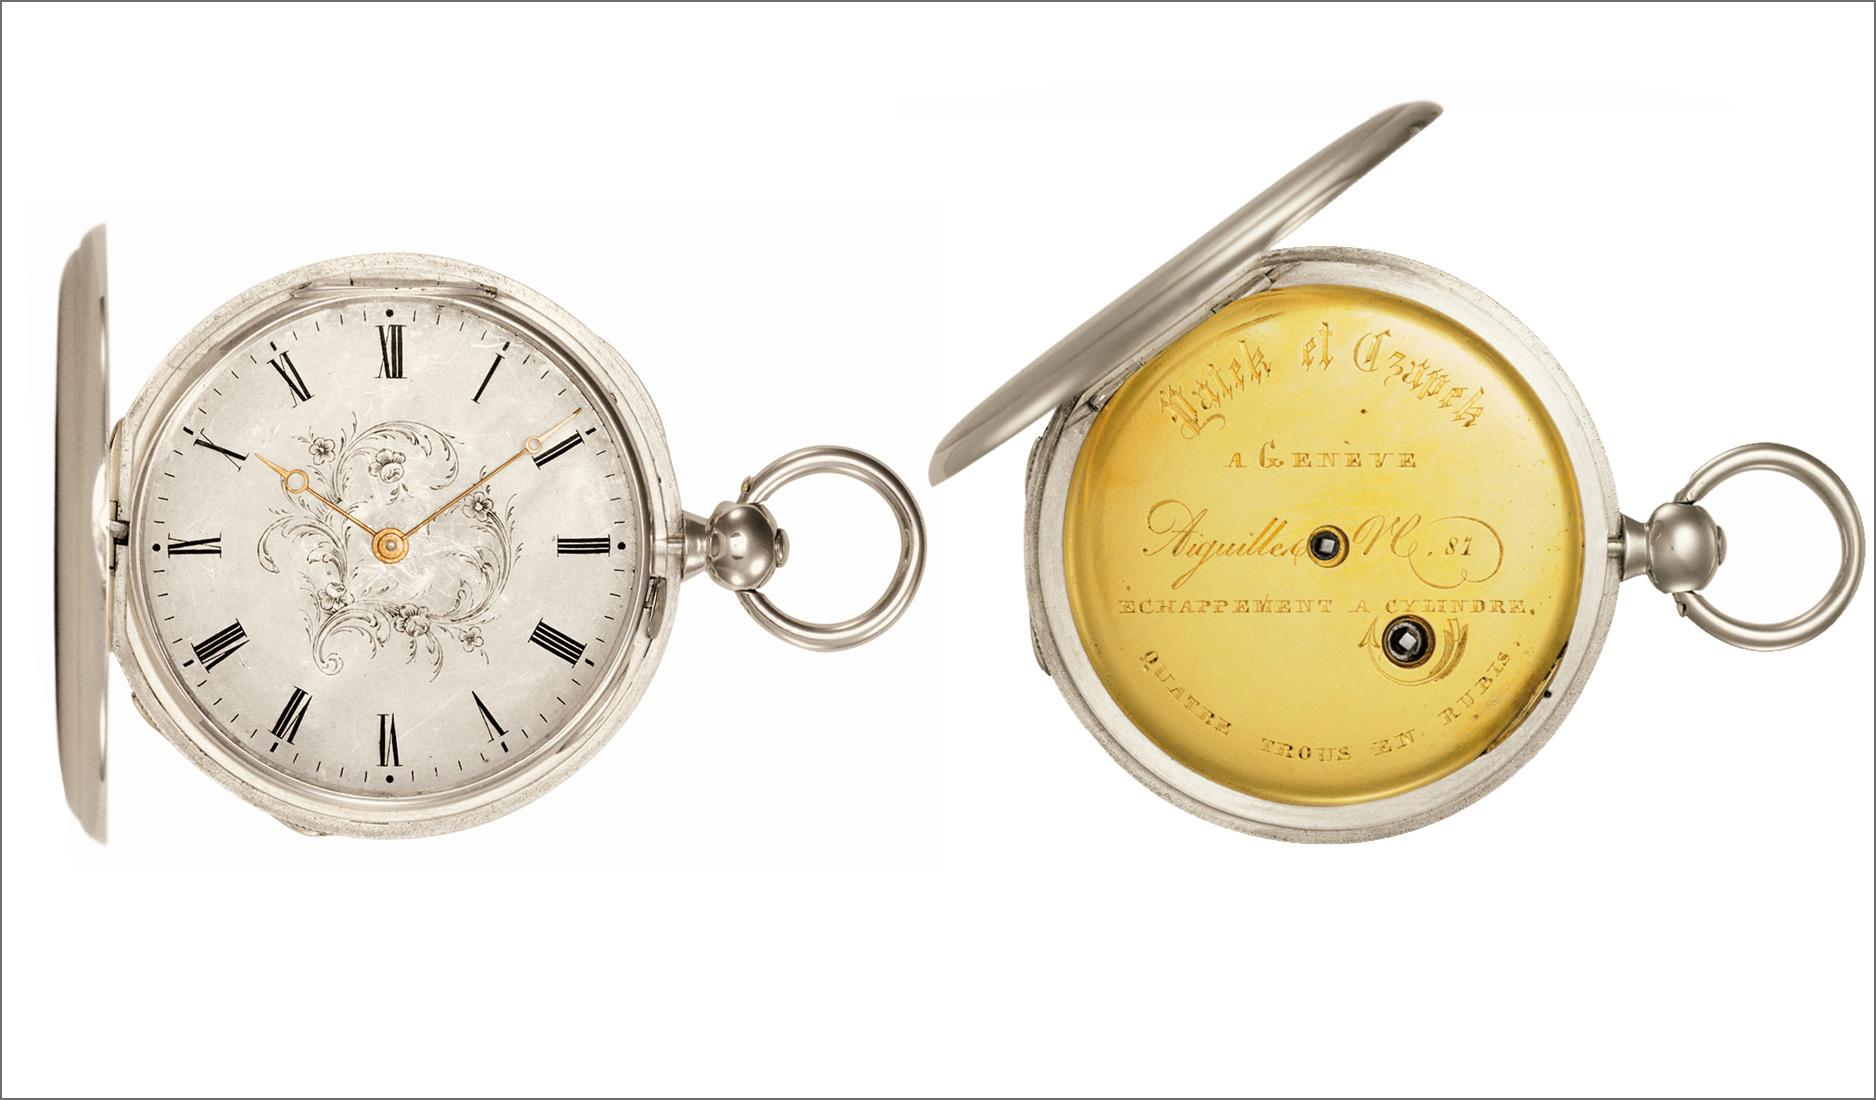 Antoine Norbert de Patek's pocket watch